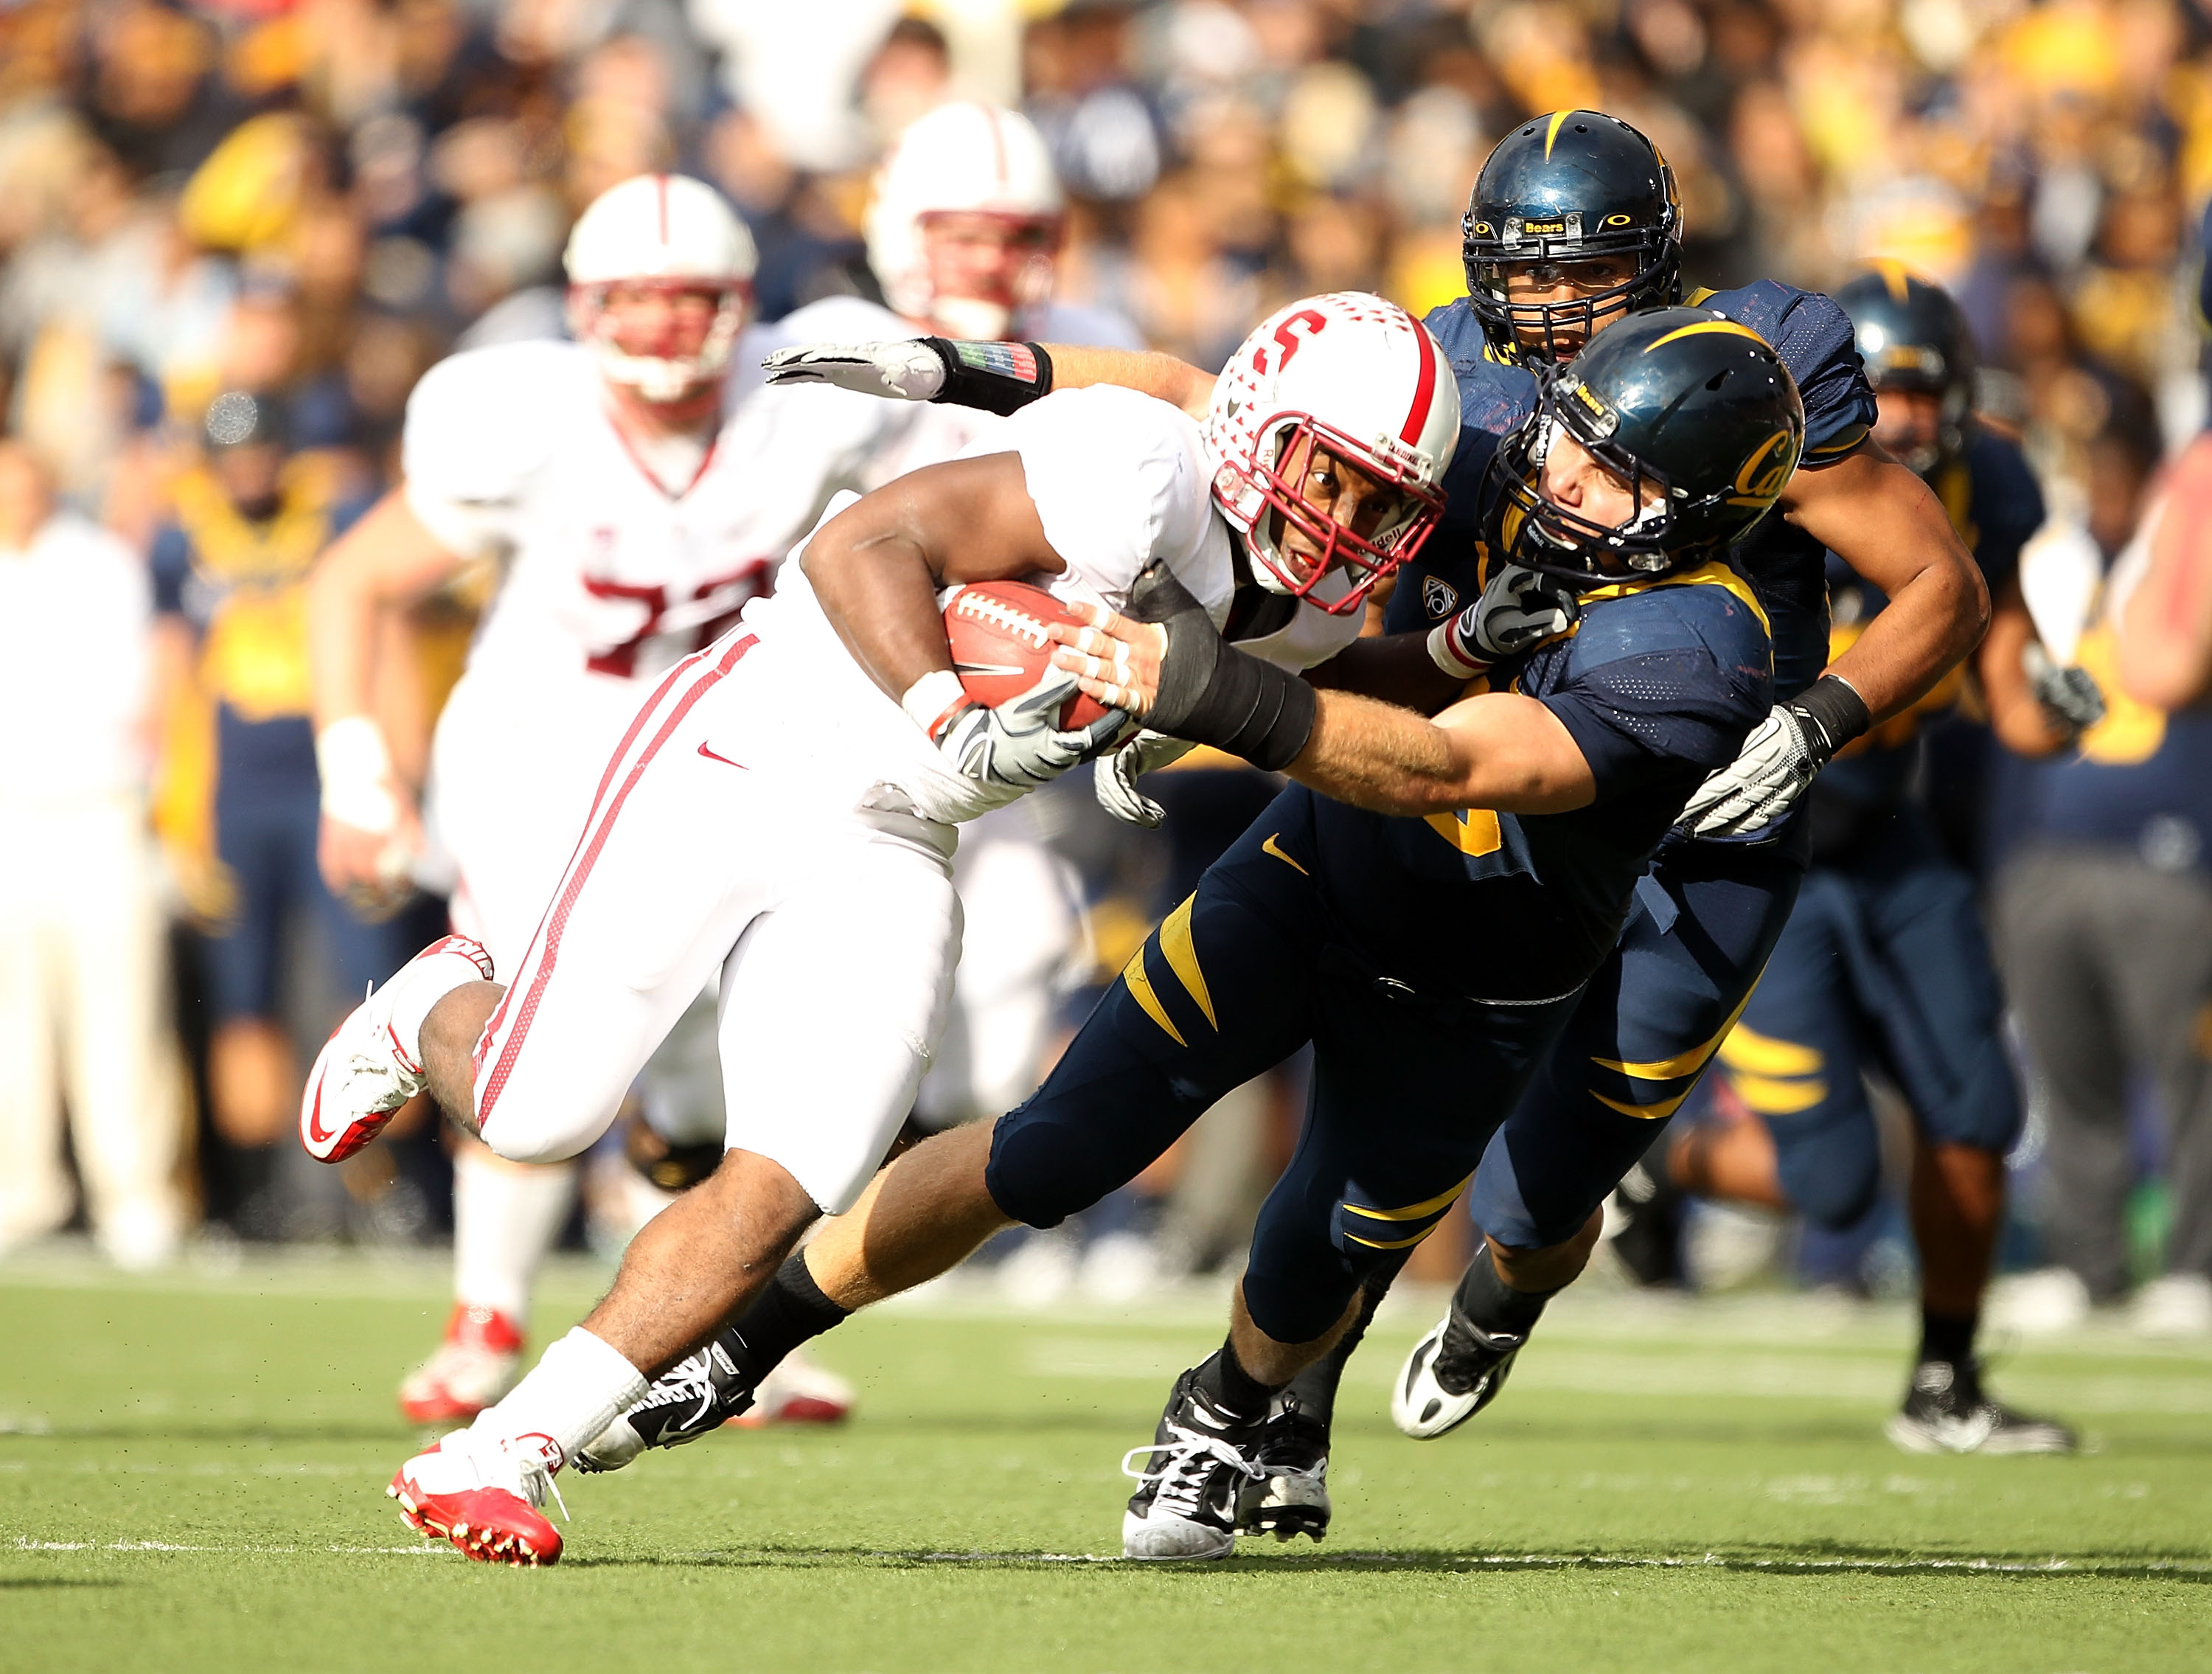 BERKELEY, CA - NOVEMBER 20:  Stepfan Taylor #33 of the Stanford Cardinal is tackled by Mike Mohamed #18 of the California Golden Bears at California Memorial Stadium on November 20, 2010 in Berkeley, California.  (Photo by Ezra Shaw/Getty Images)